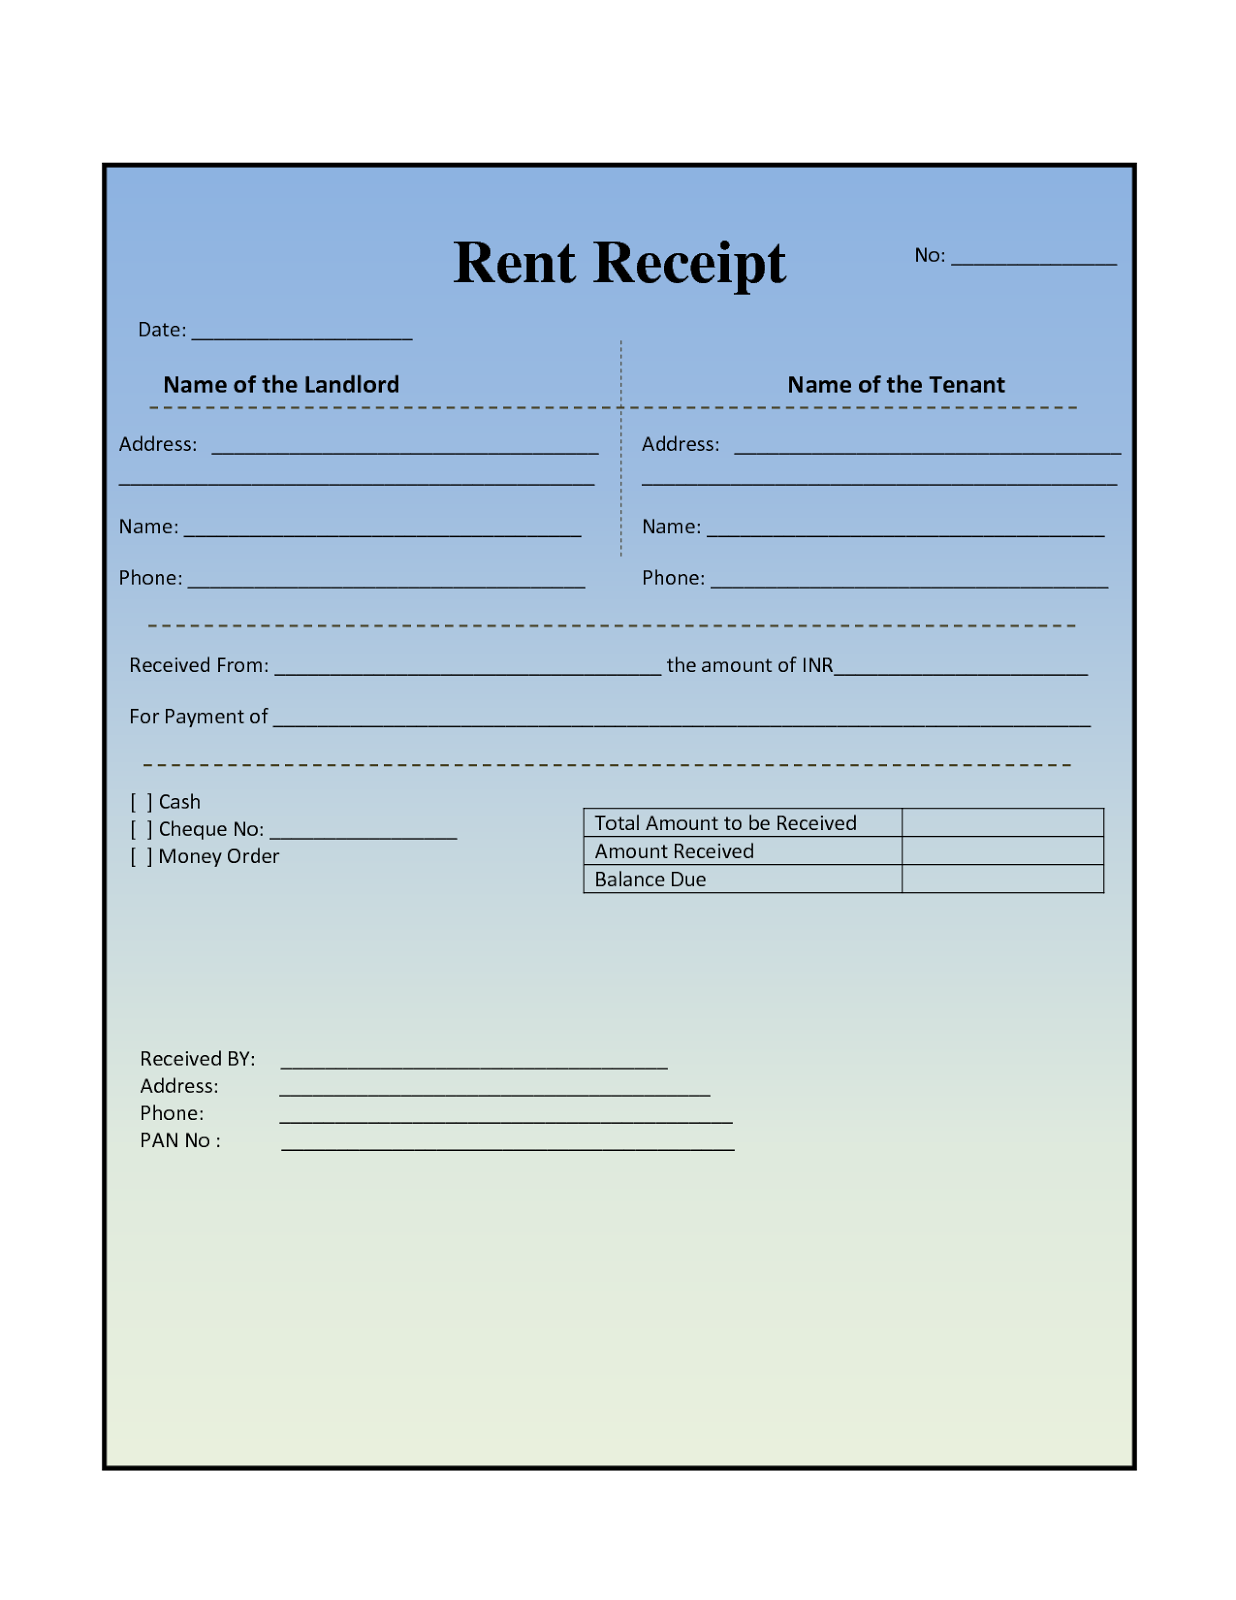 rent receipt format india – House Rent Receipt Template